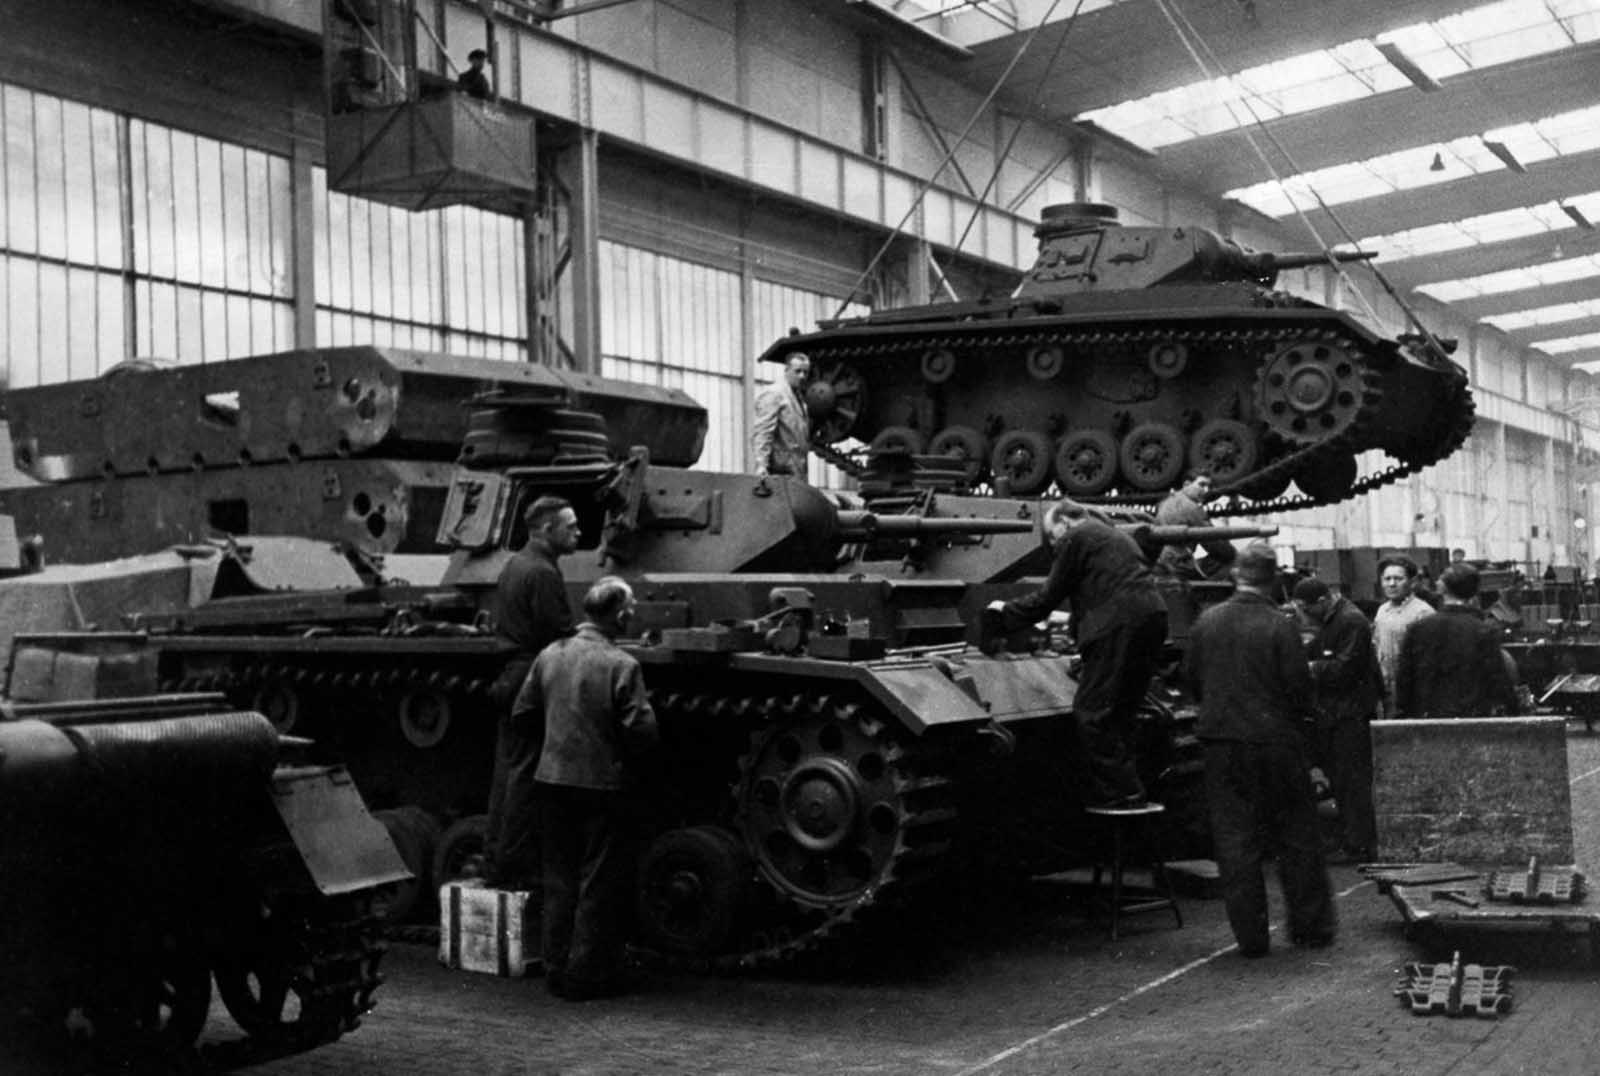 A German tank factory. May 15, 1940.